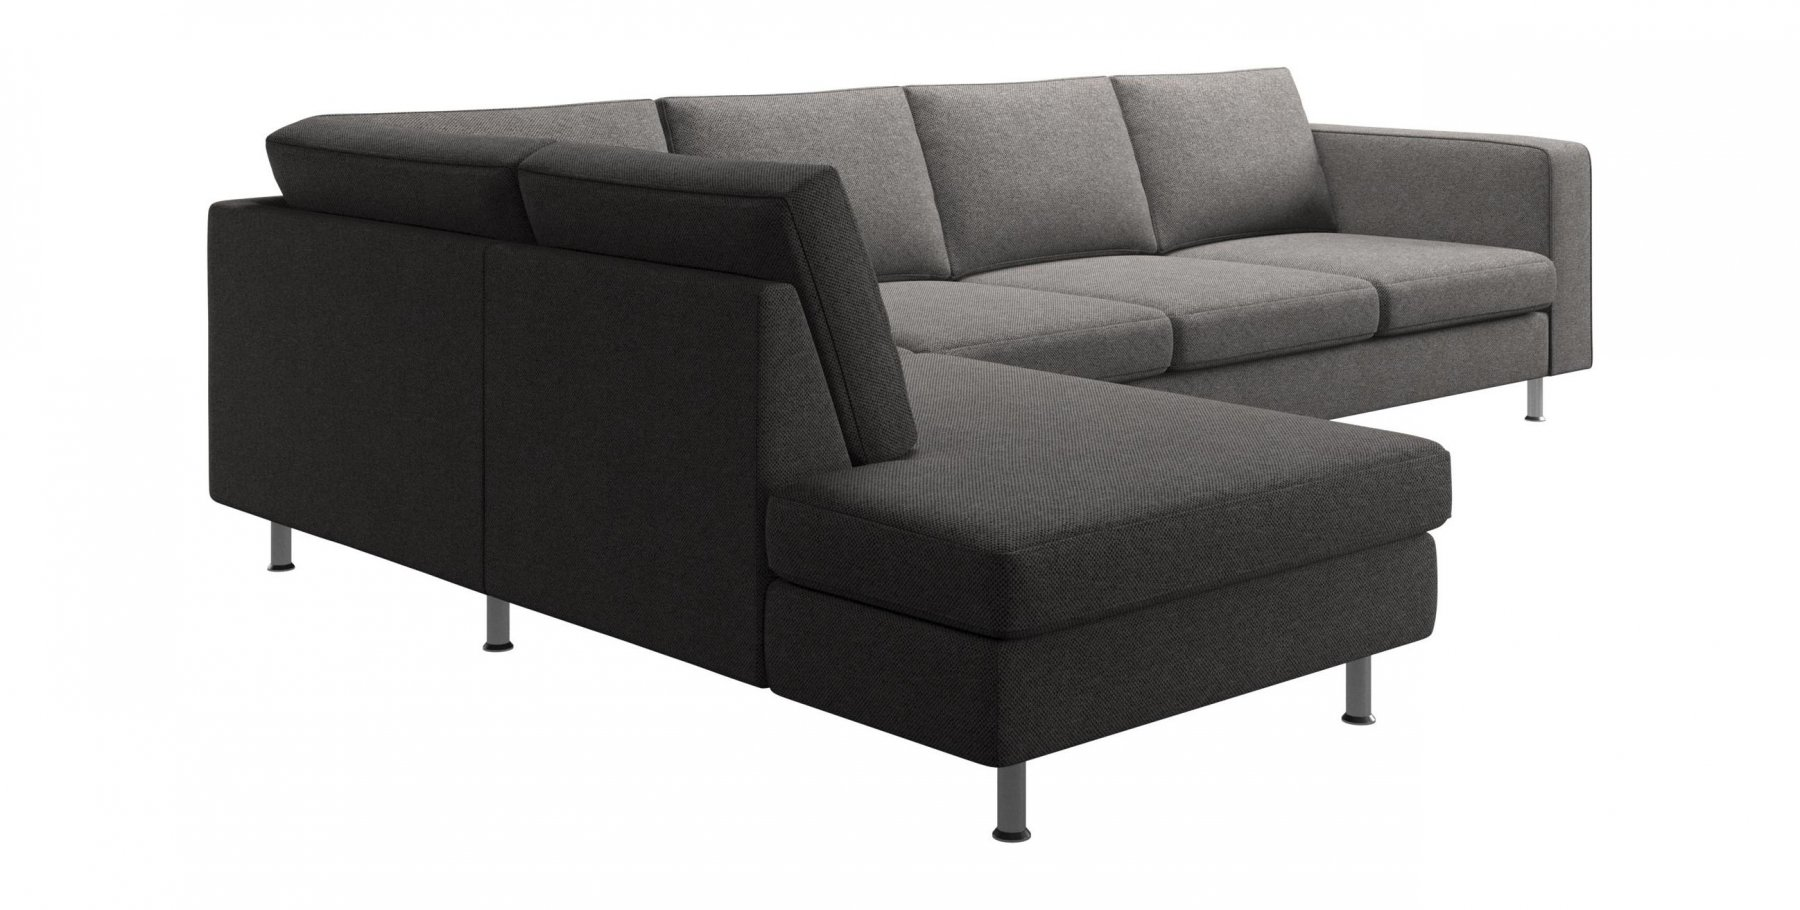 Indivi 2 Corner Sofa with Lounging Unit by BoConcept